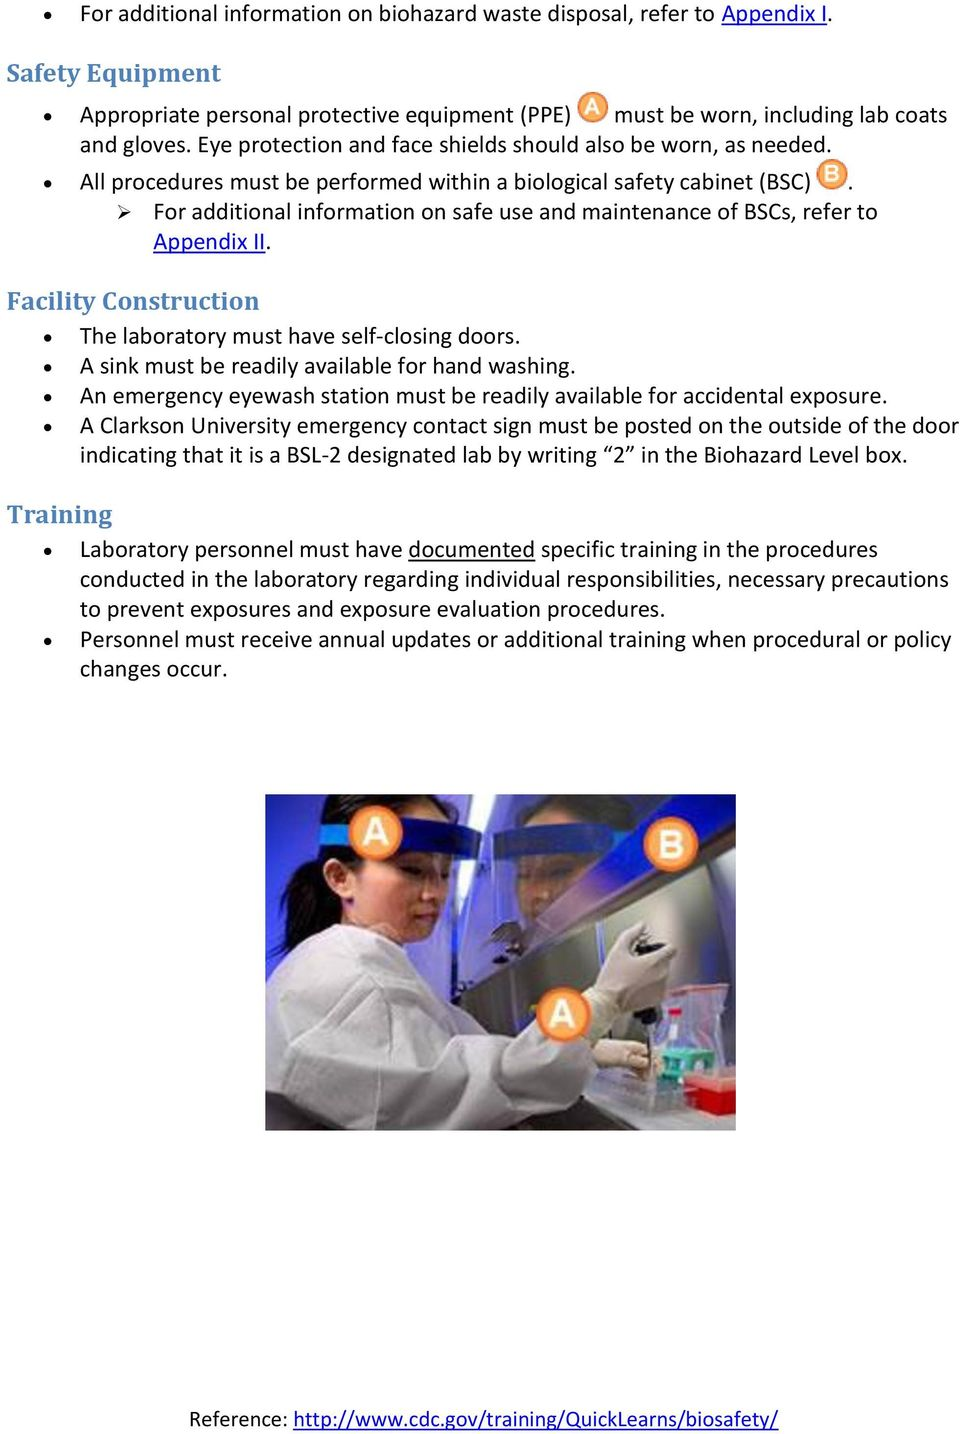 Biosafety Level 2 (BSL-2) Safety Guidelines - PDF